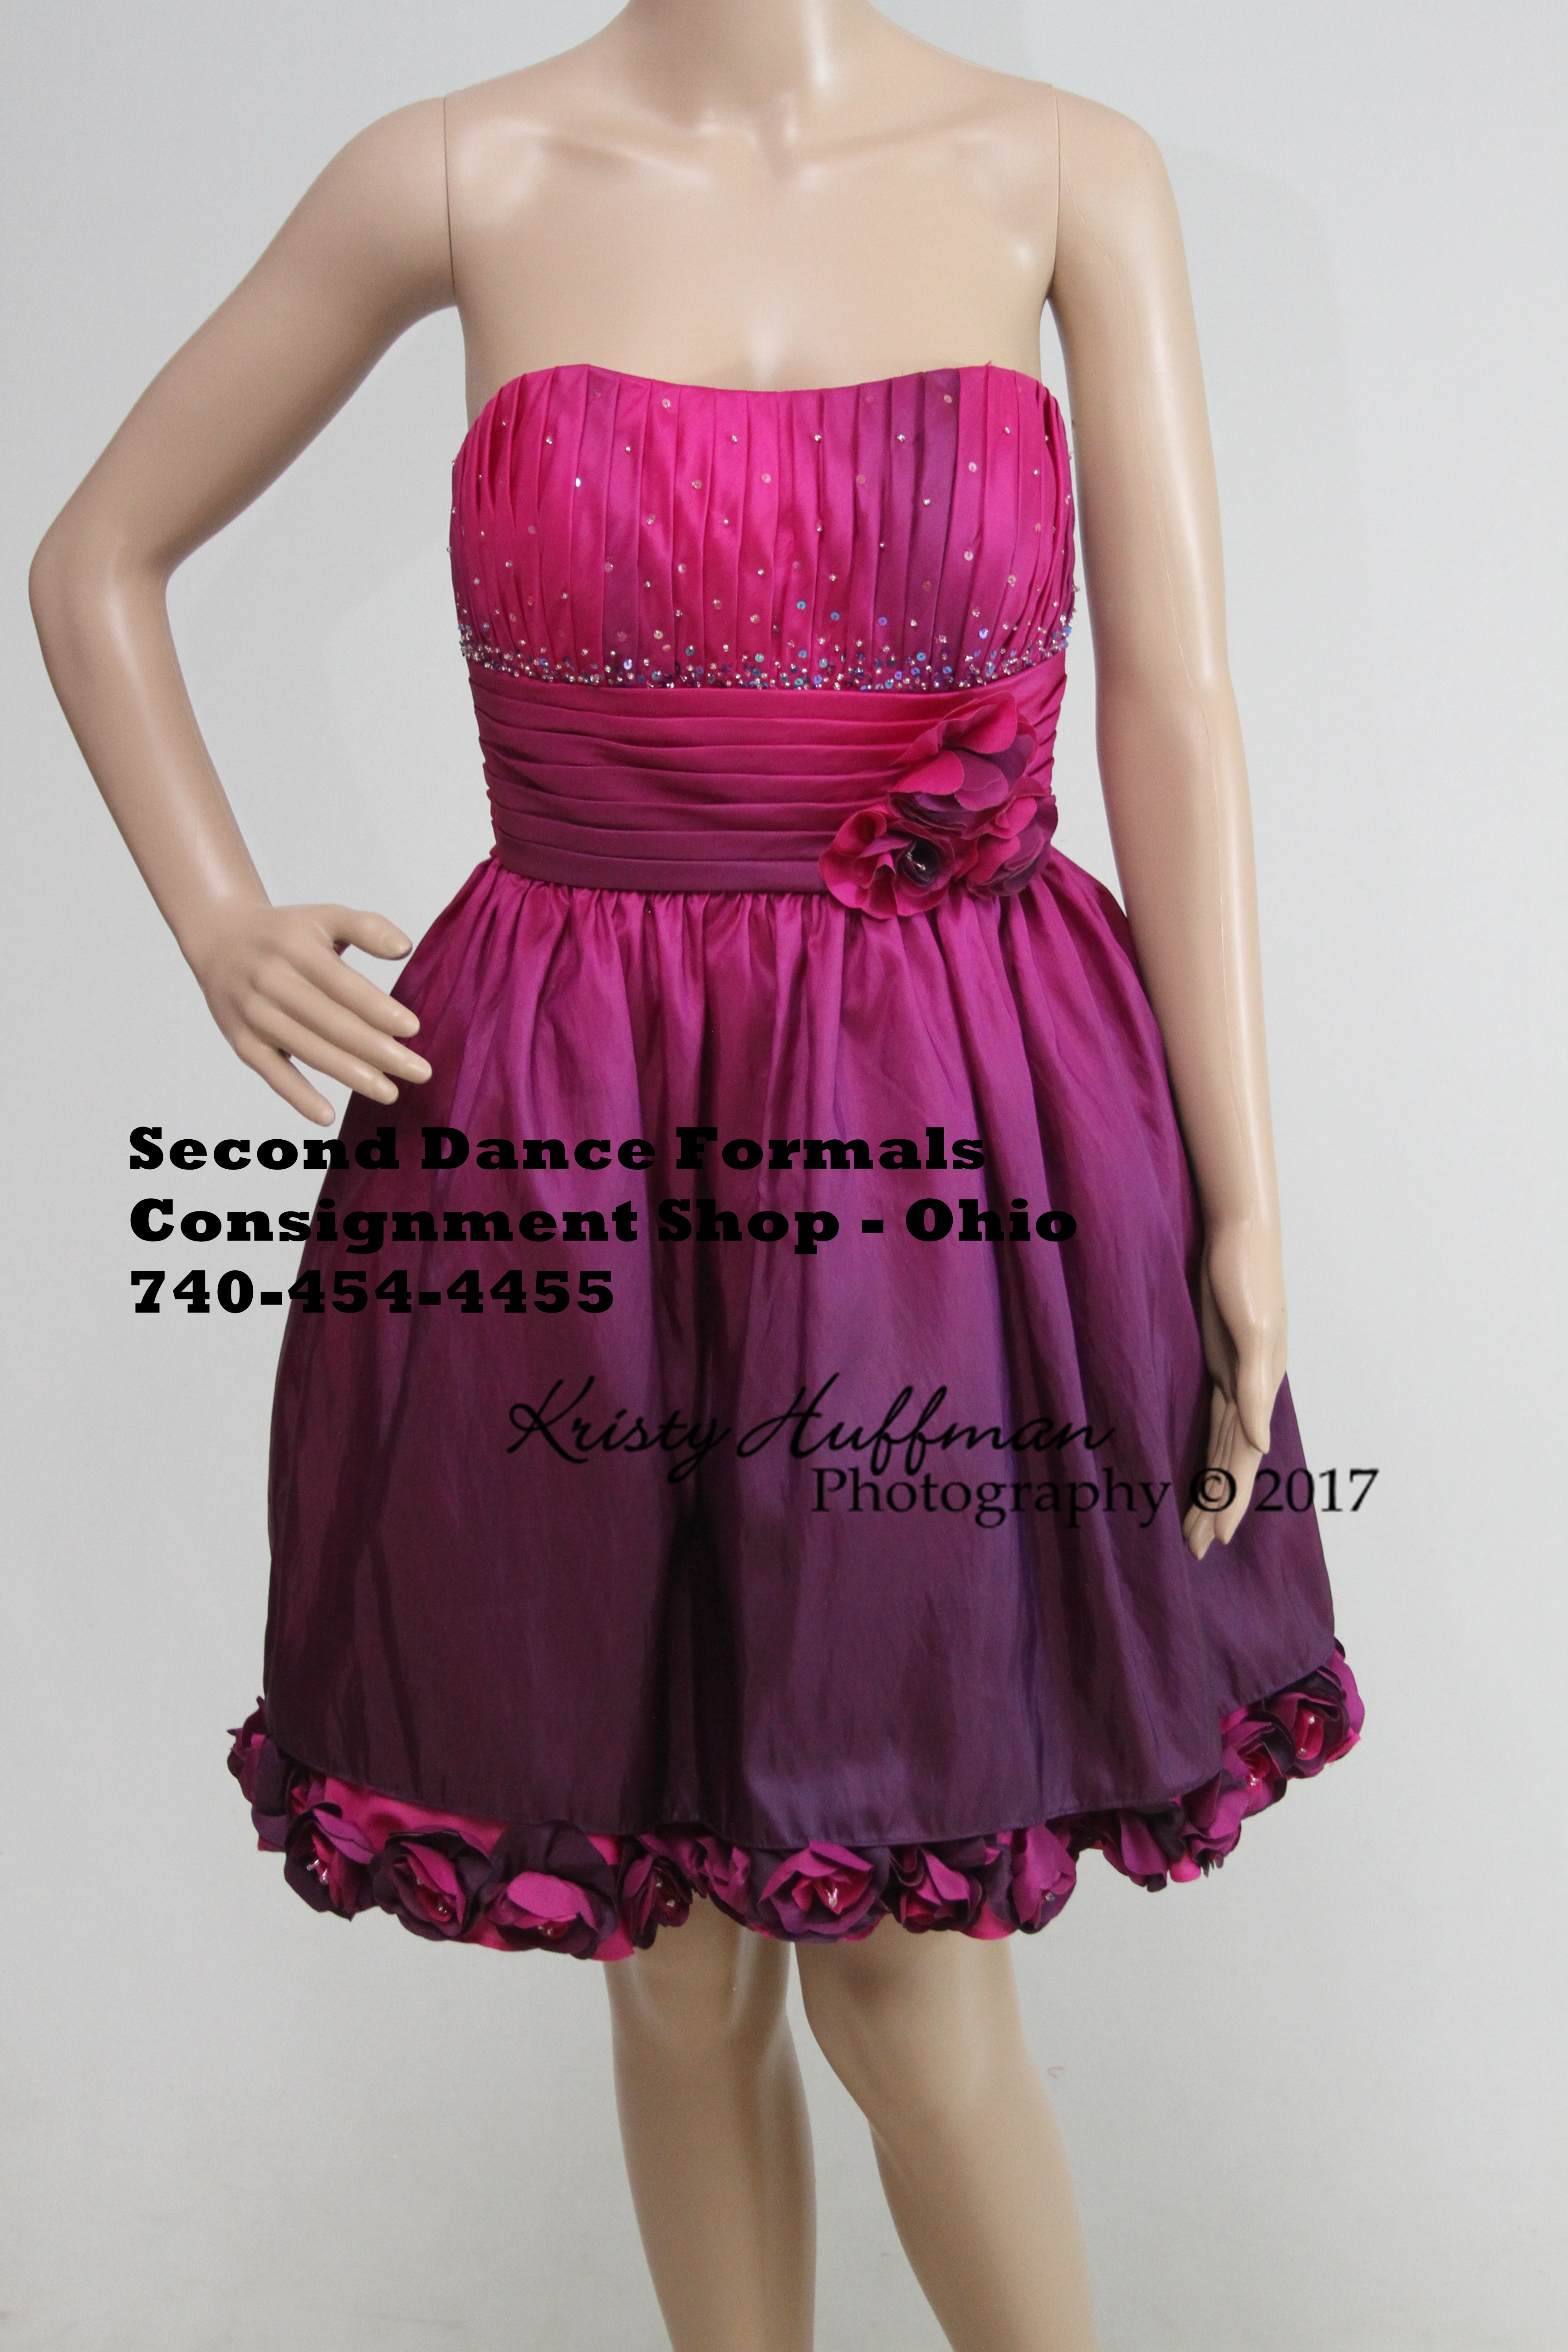 Second Dance Formal Consignment Shop